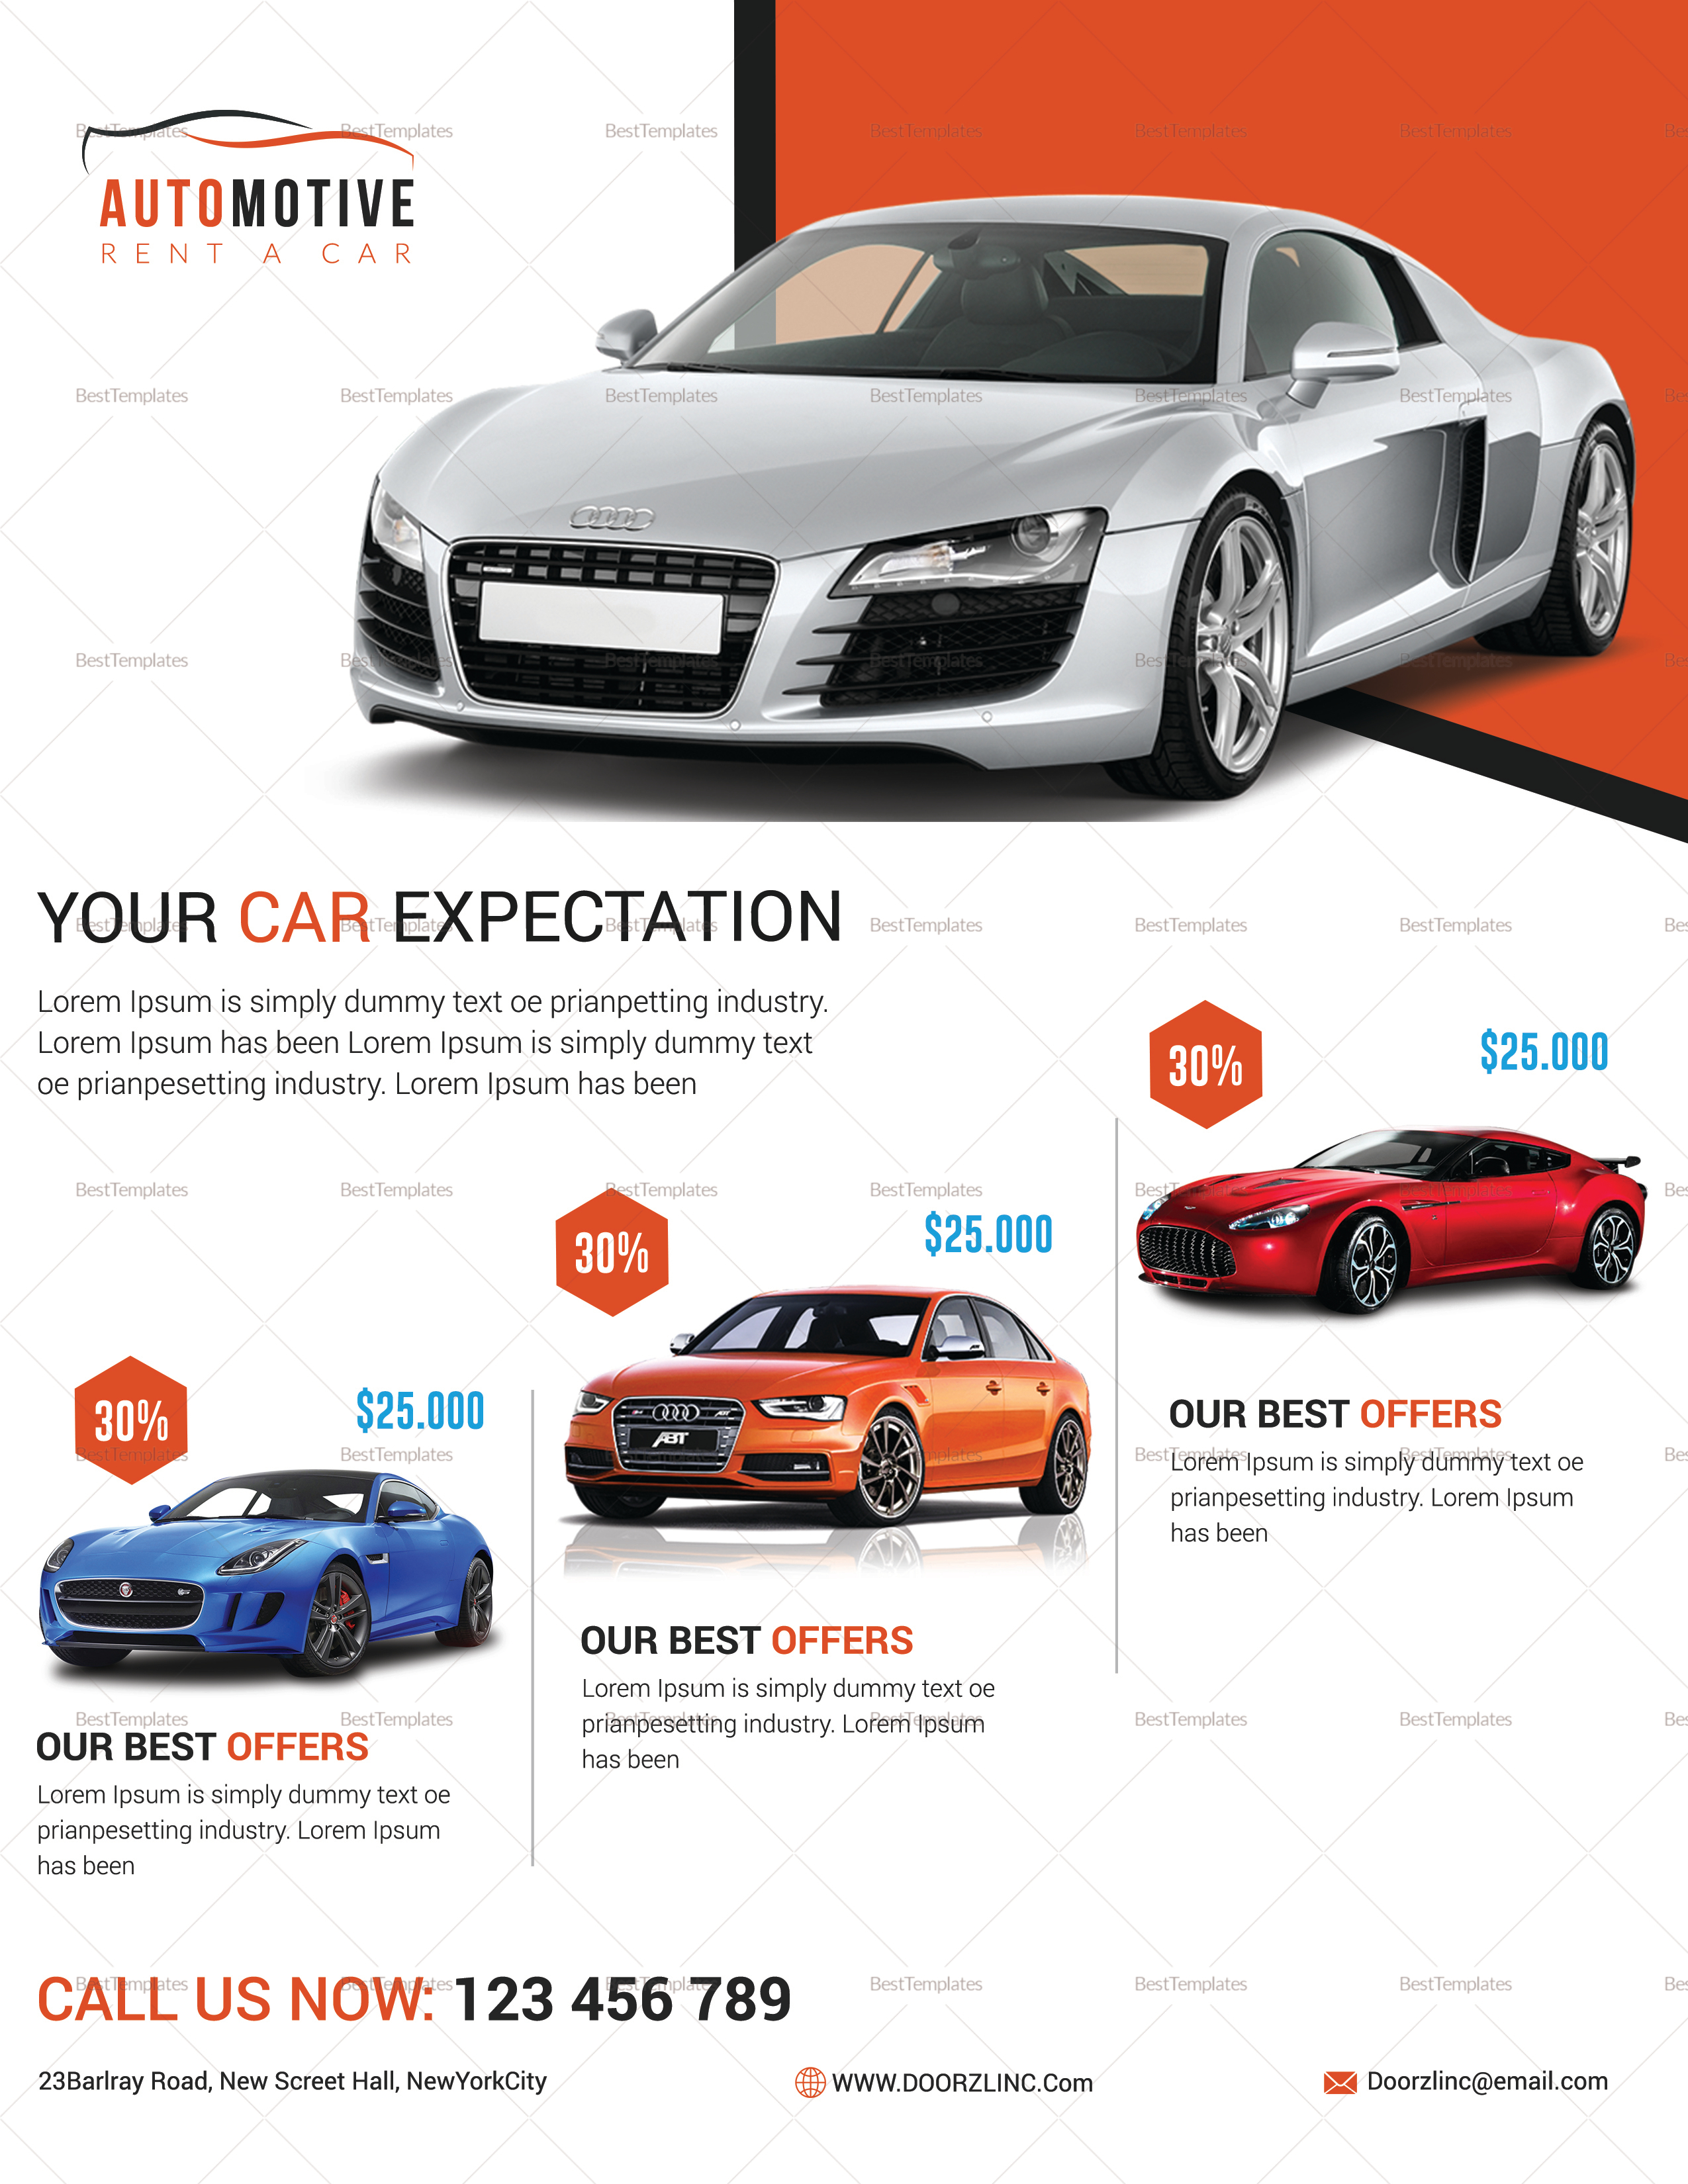 Automotive Car Sale Flyer Design Template in PSD, Word, Publisher